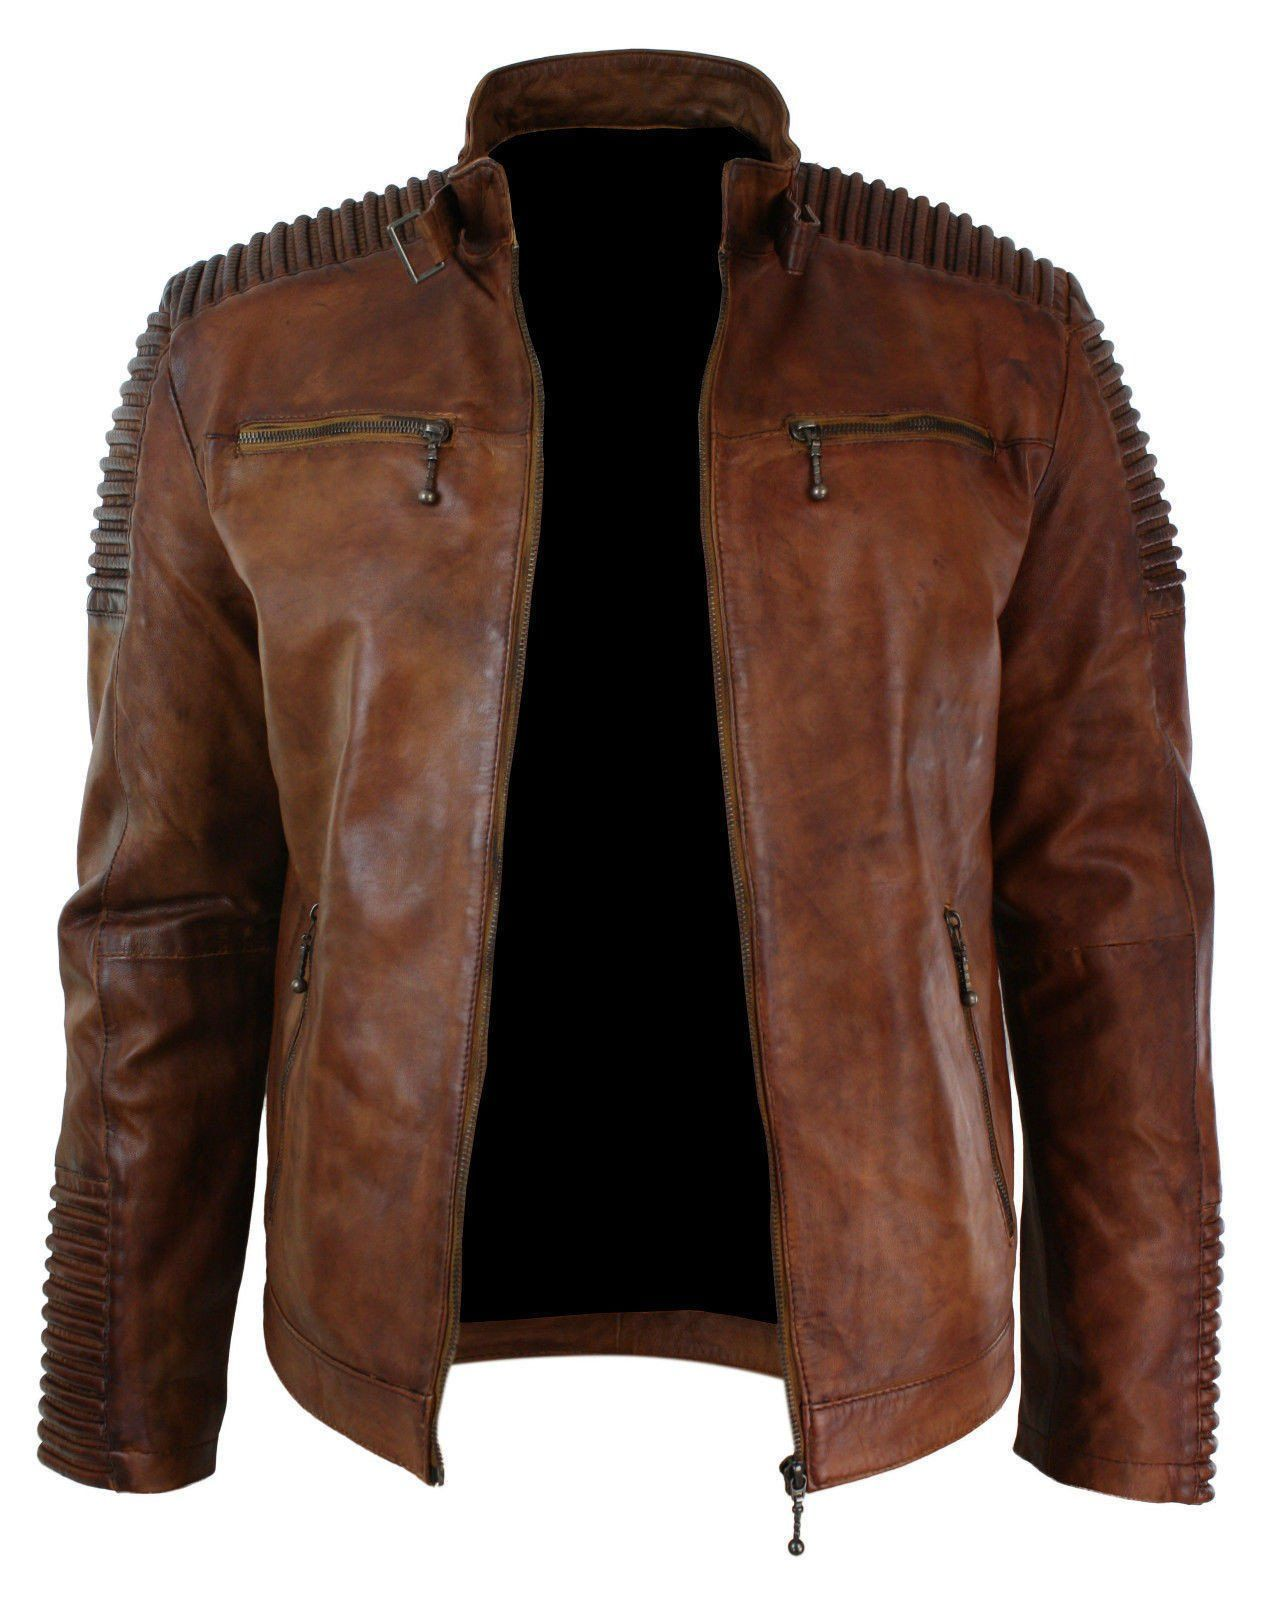 Men's Motorcycle Classic Diamond Brown Distressed Leather Jacket.This  beautiful and rugged looking Cafe Racer